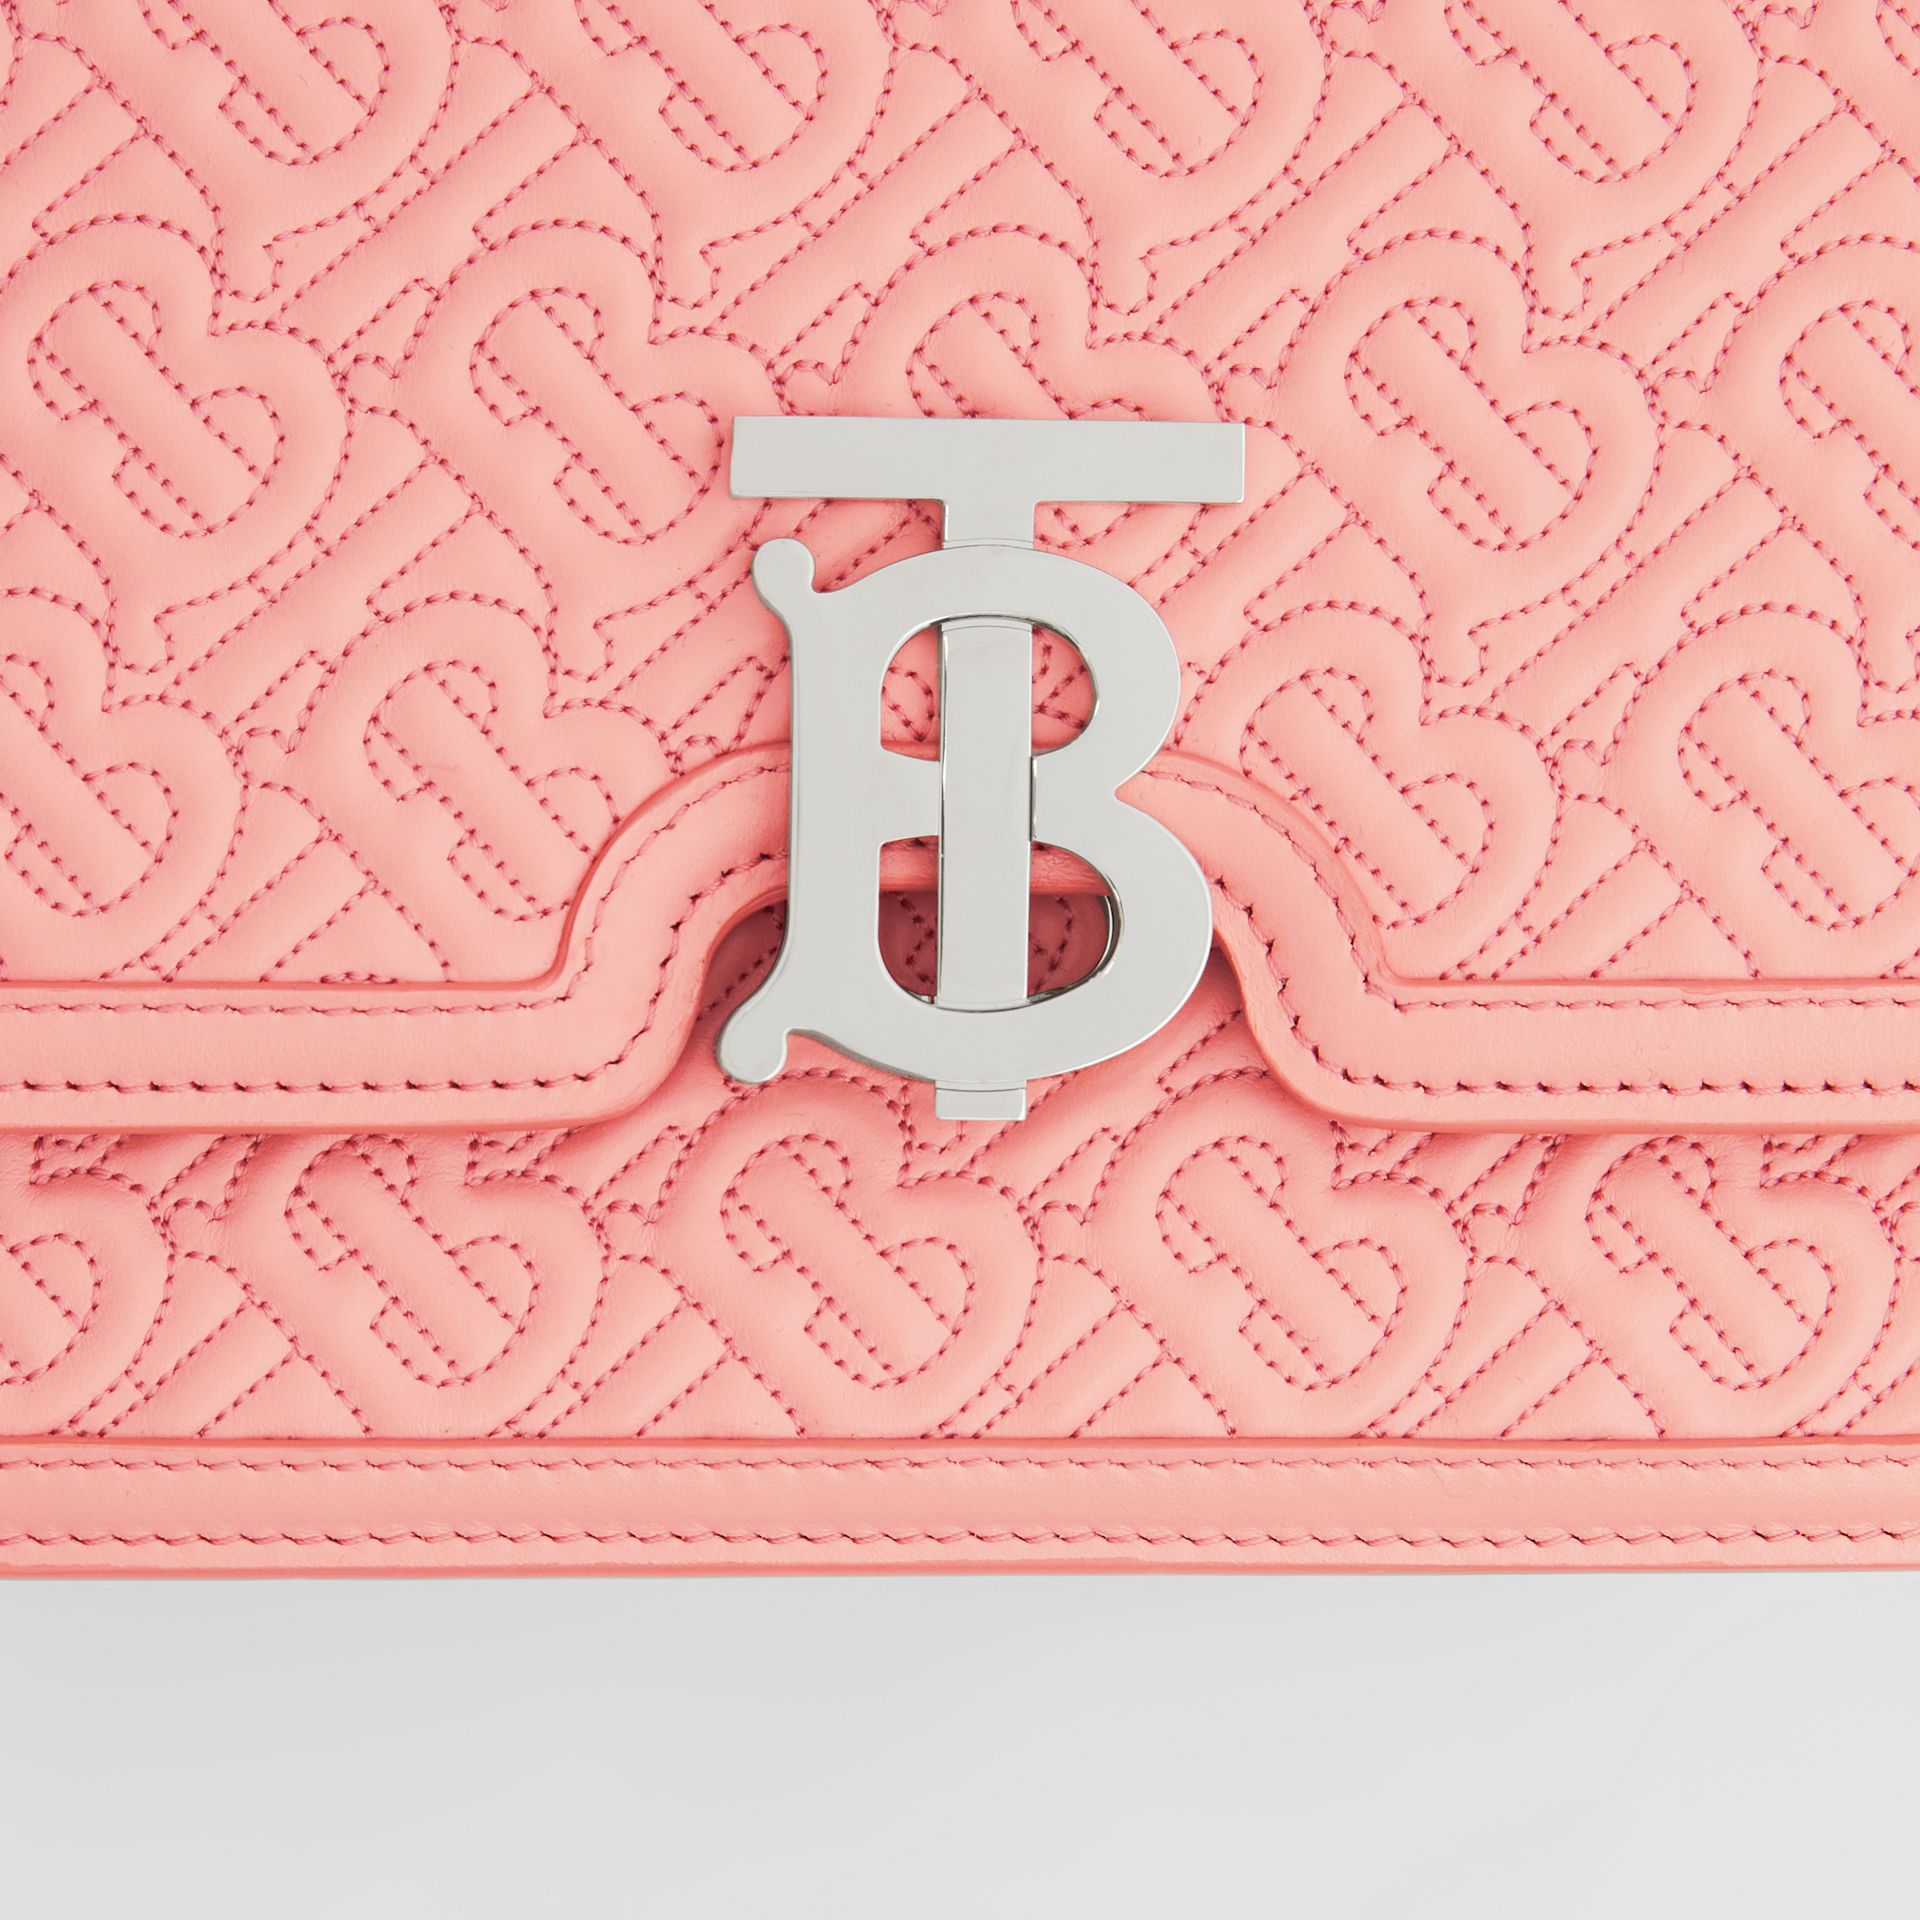 Small Quilted Monogram Lambskin TB Bag in Blush Pink - Women | Burberry Hong Kong S.A.R. - gallery image 1